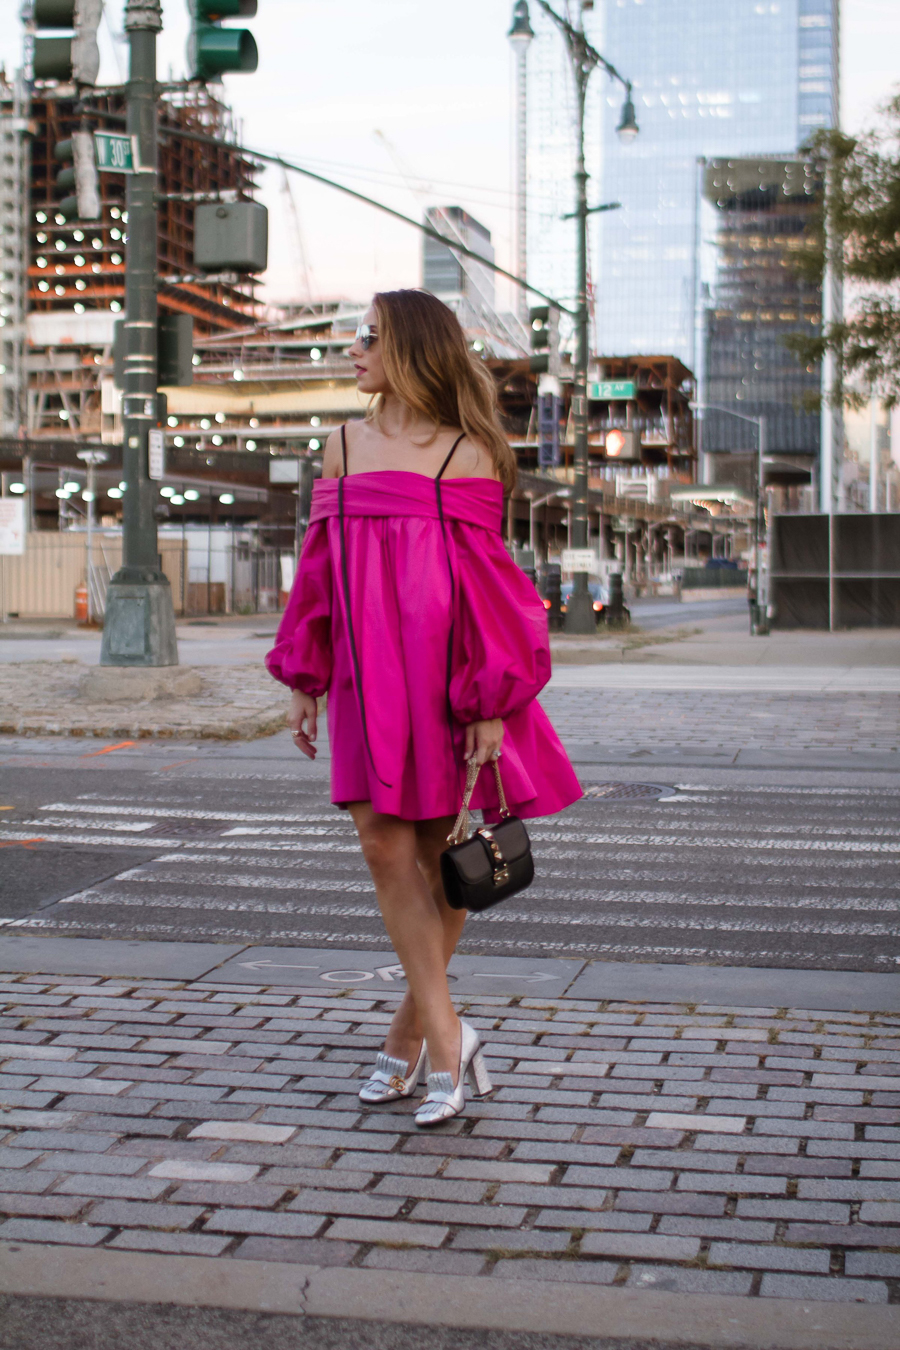 sabrina-chakici-clutch-and-carry-on-clutch-carry-on-uk-travel-blogger-nyfw-isa-arfen-pink-ress-gucci-silver-shoes-net-a-porter-helicopter-5